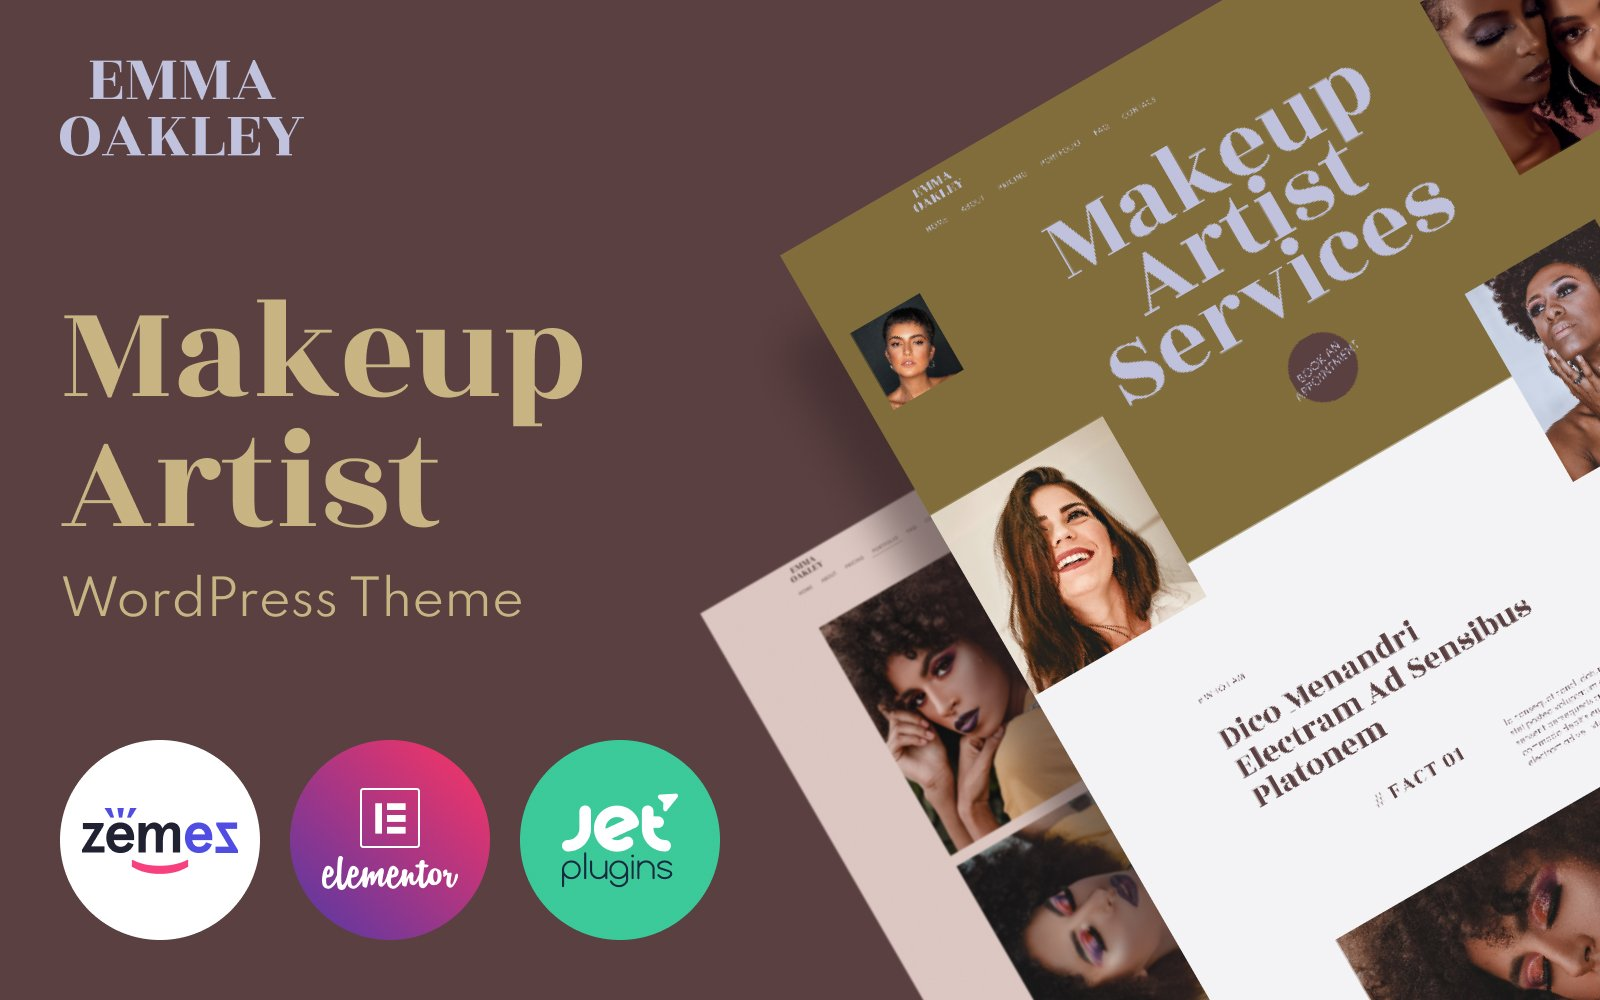 Emma Oakley - Makeup Artist WordPress Theme